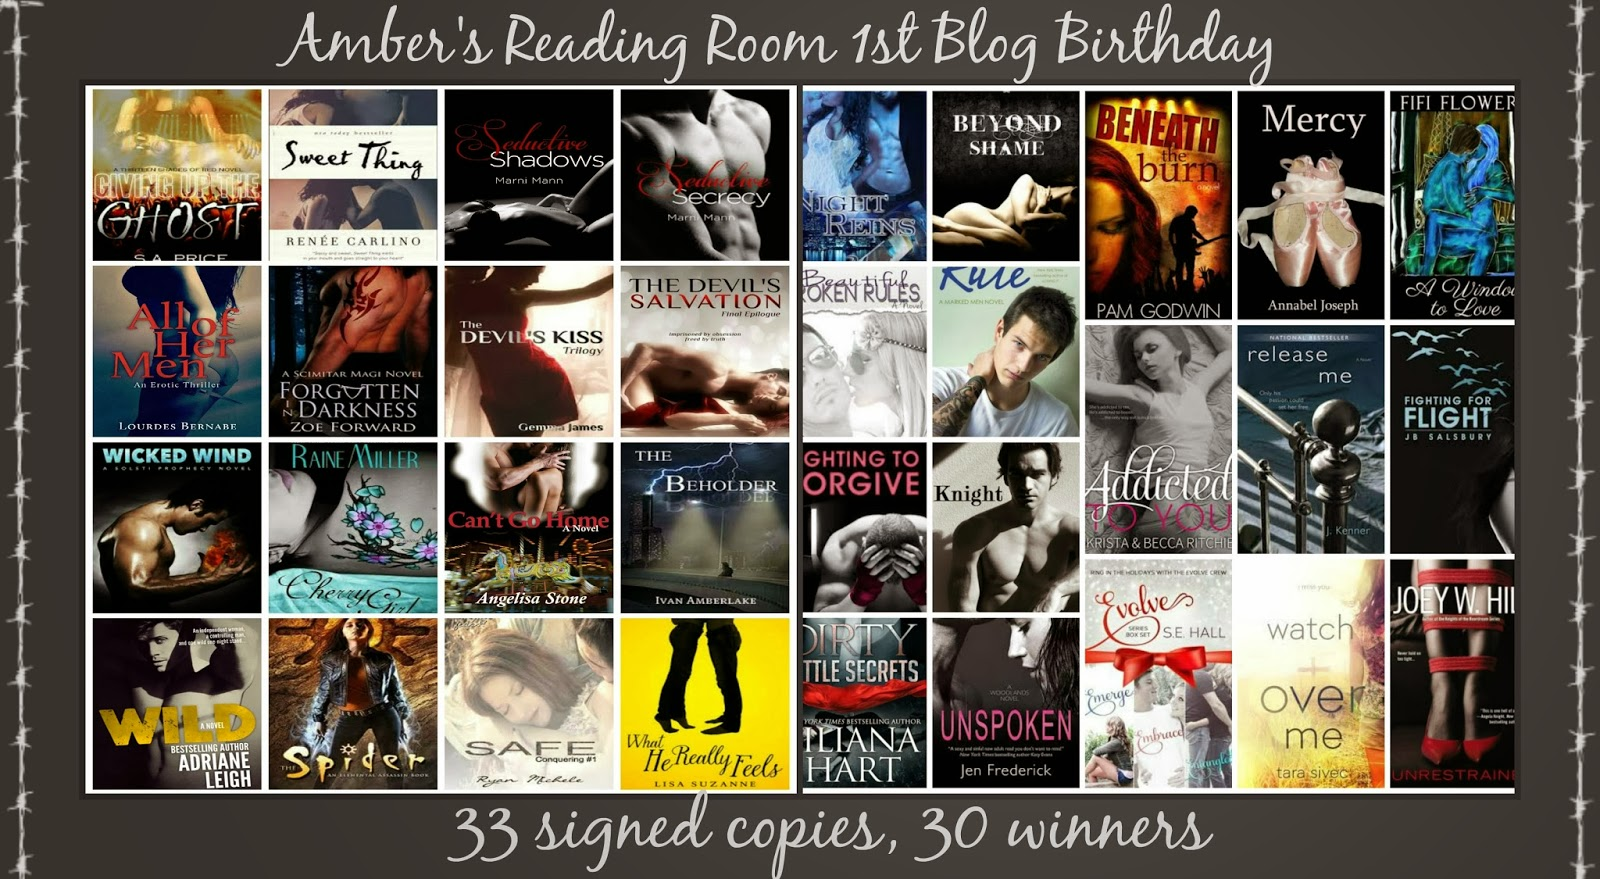 http://www.ambersreadingroom.com/2014/01/happy-1st-blog-birthday.html?zx=87e04a3270121d47